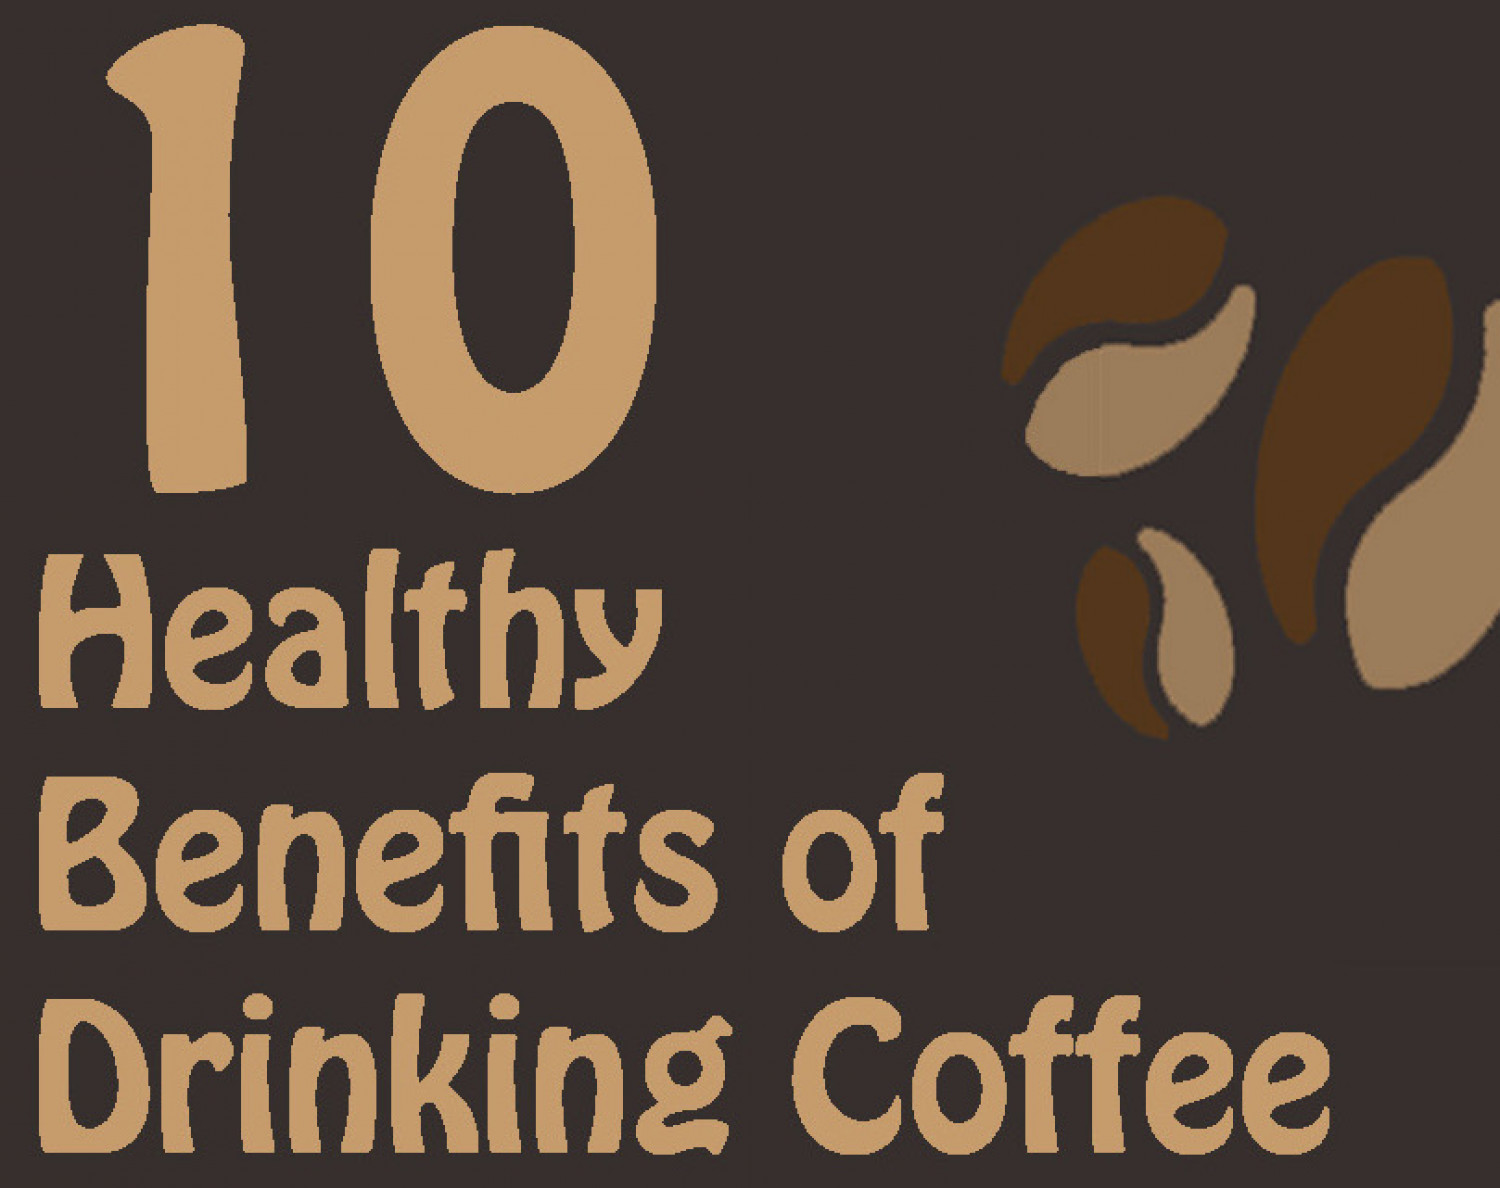 10 Healthy Benefits of Drinking Coffee Infographic